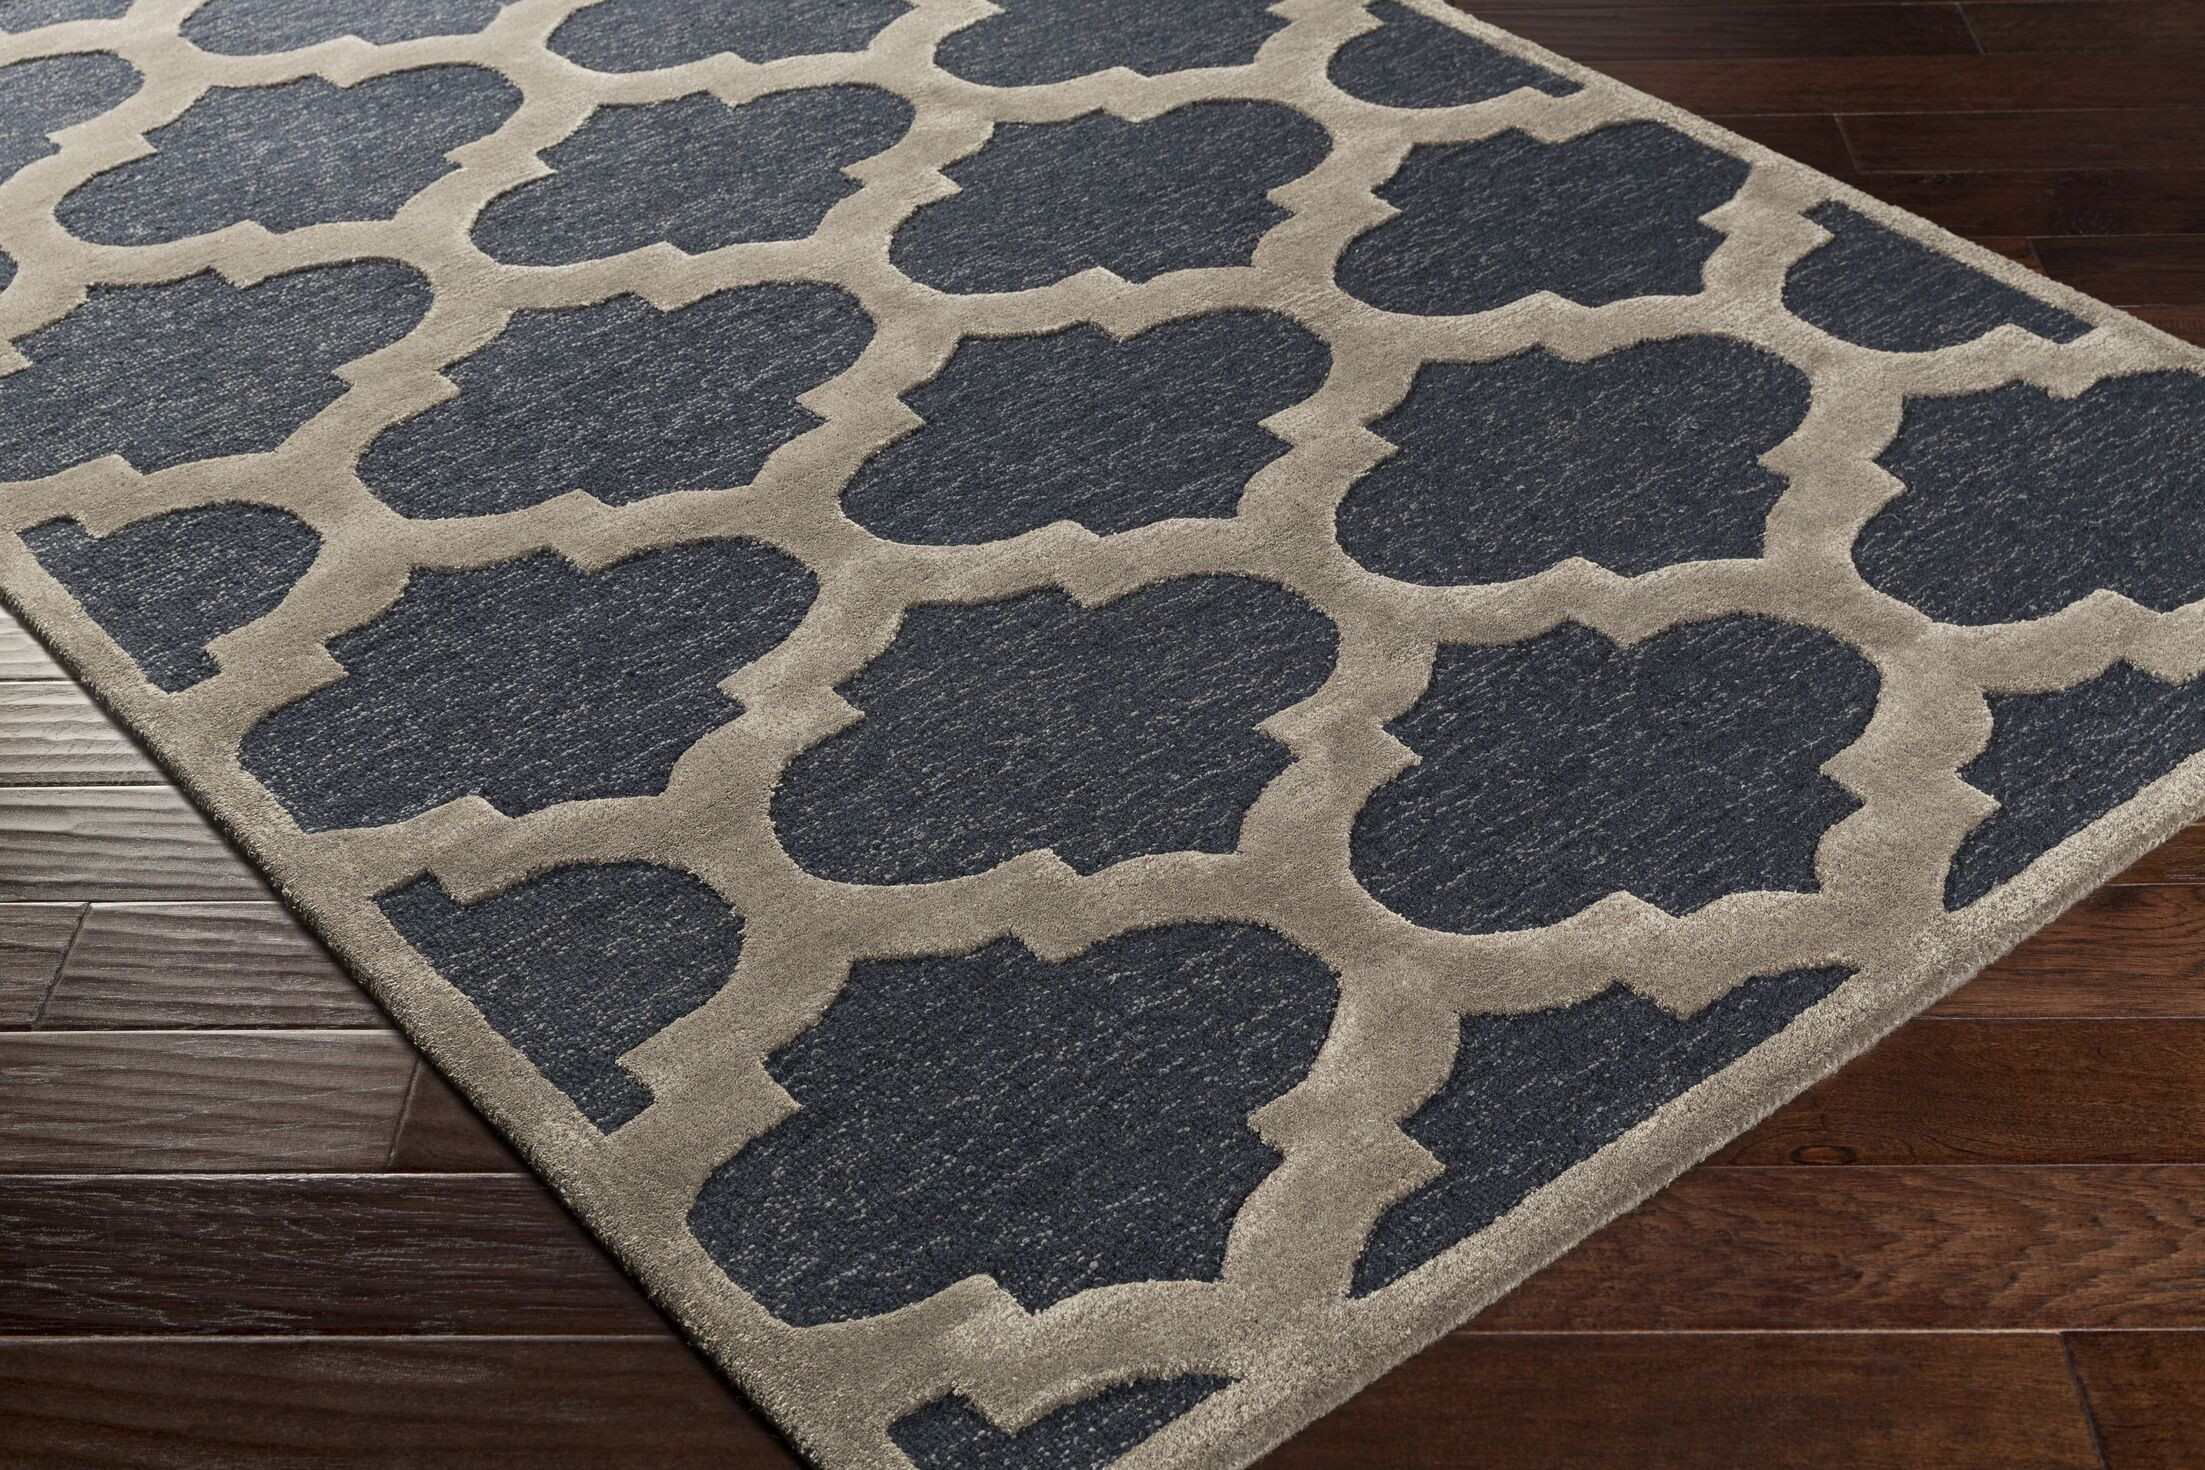 Boise Hand-Tufted Navy Area Rug Rug Size: Round 3'6